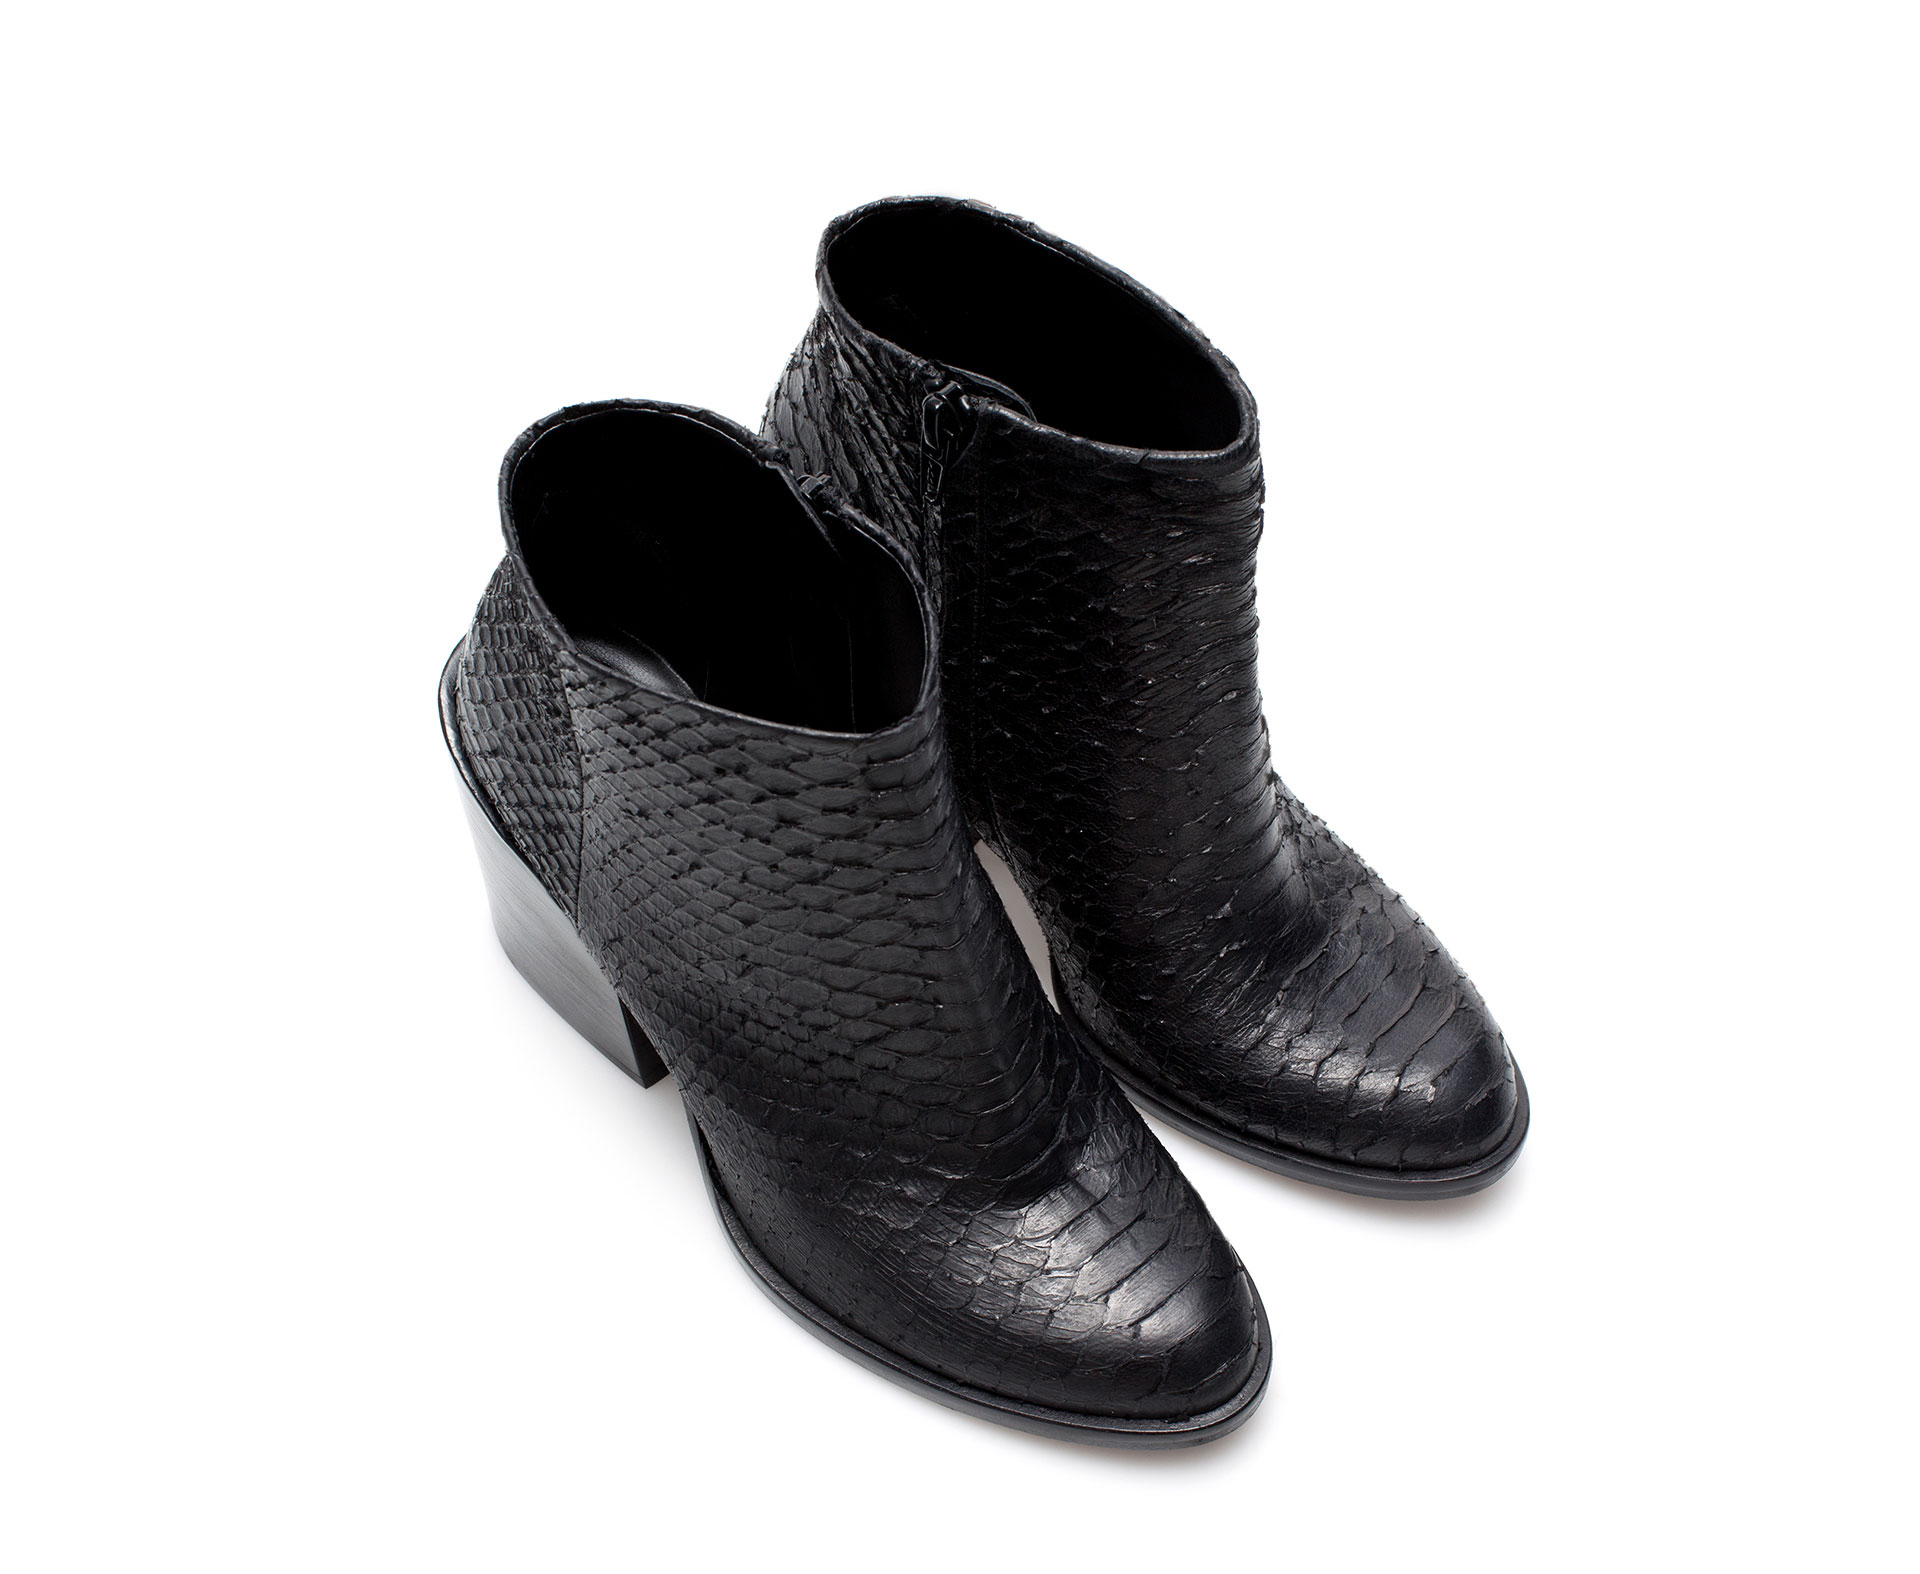 Zara Embossed Leather Ankle Boot in Black | Lyst